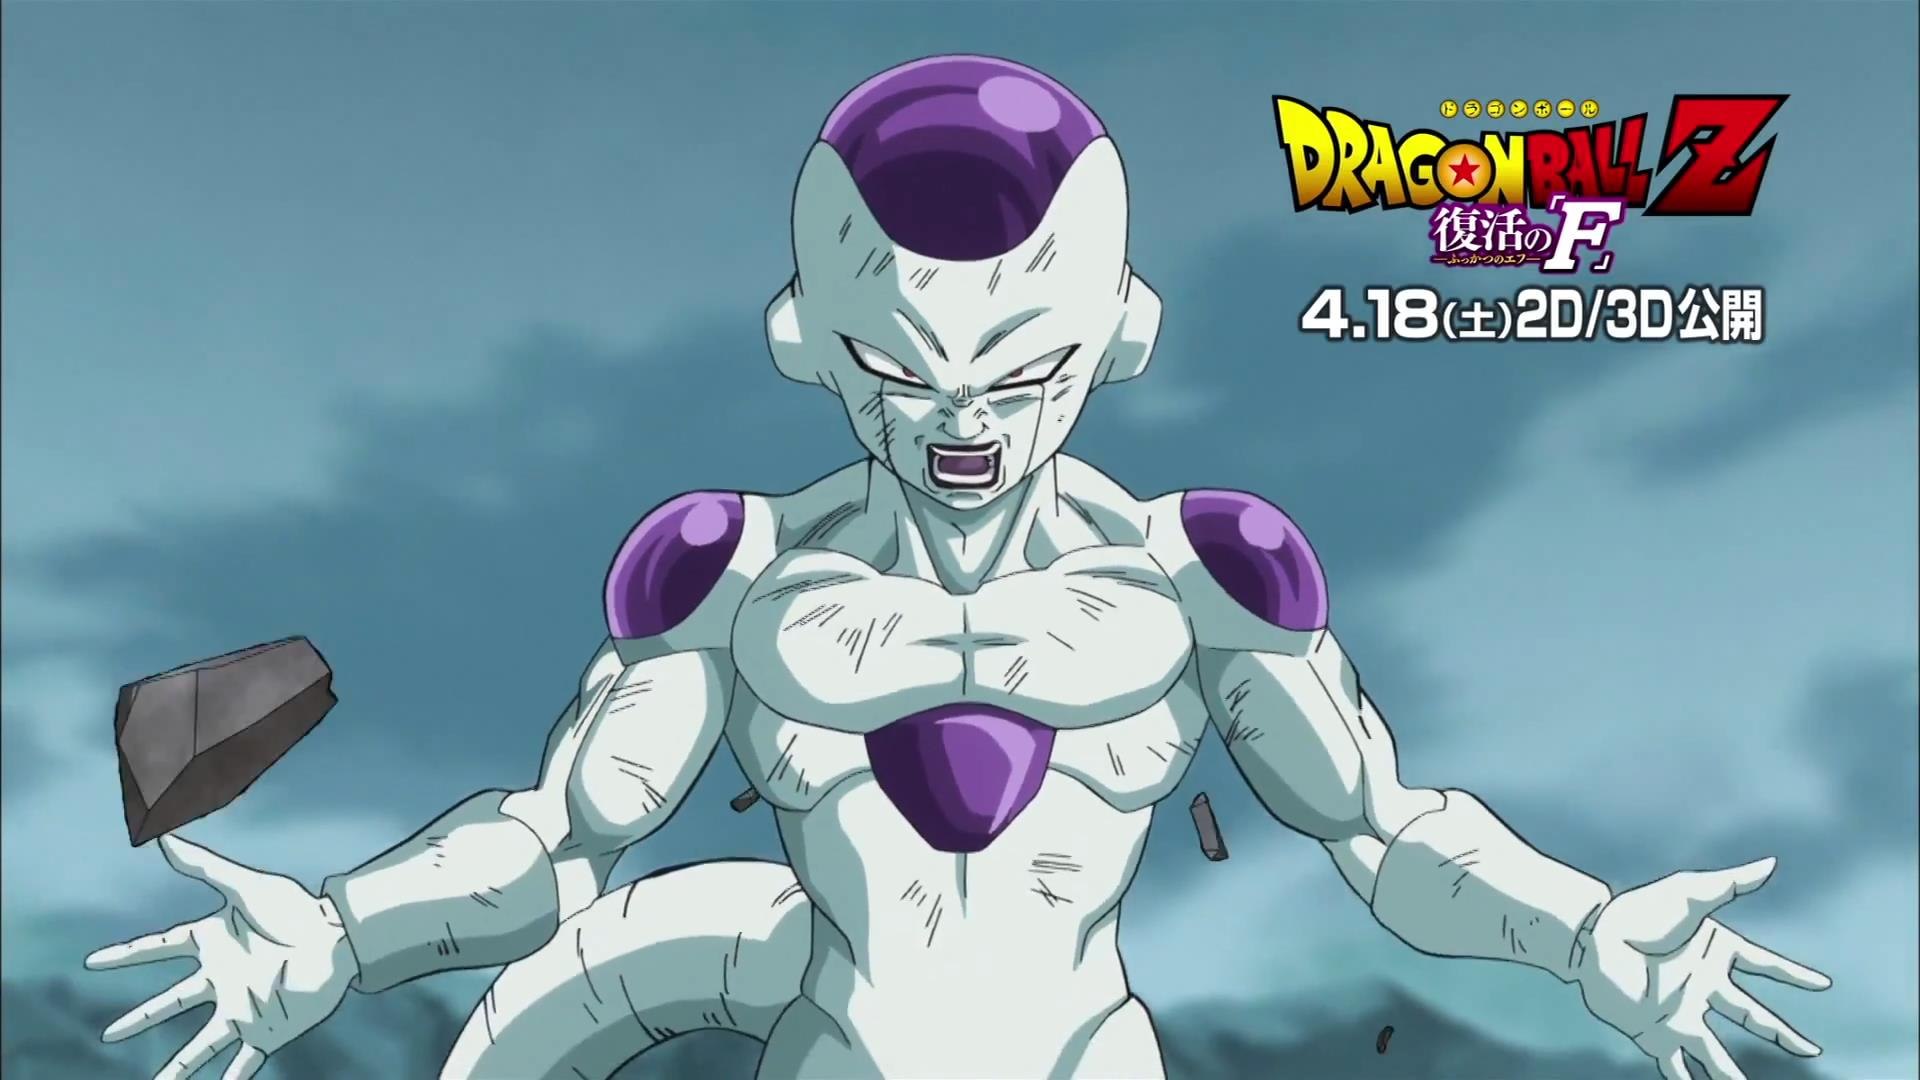 Dragon Ball Z: Resurrection F Kinezo Movie Trailer